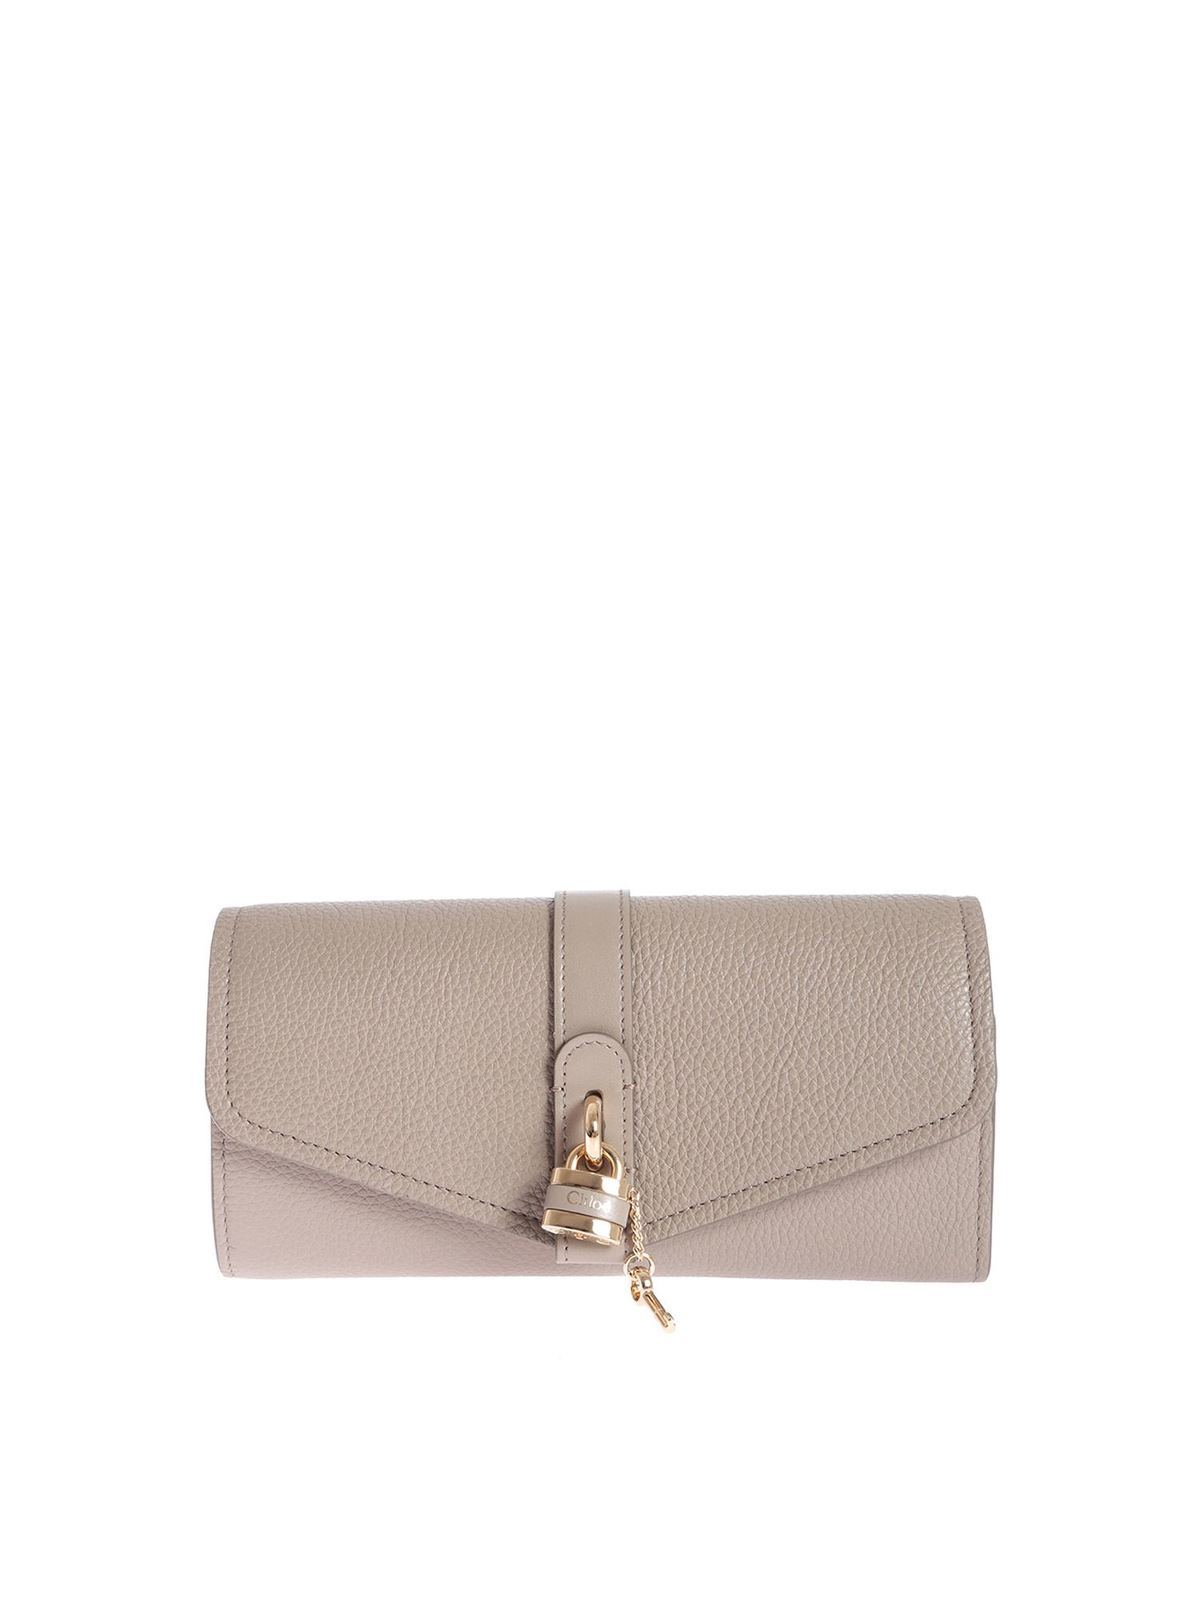 Chloé ABY CONTINENTAL WALLET IN GREY